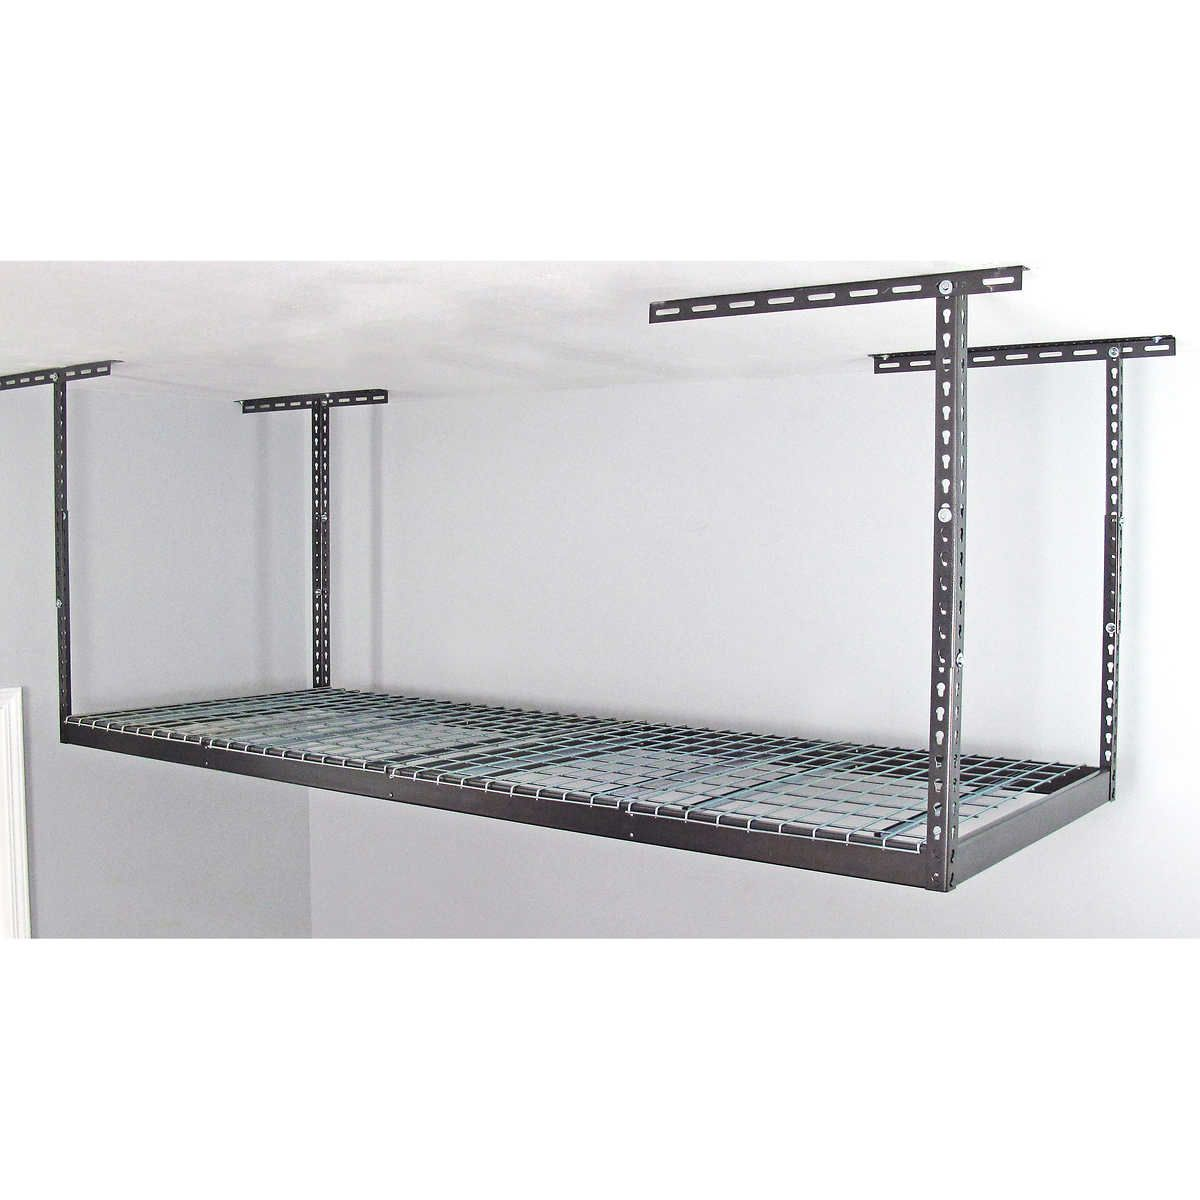 SafeRacks 3 ft x 8 ft Overhead Garage Storage Rack